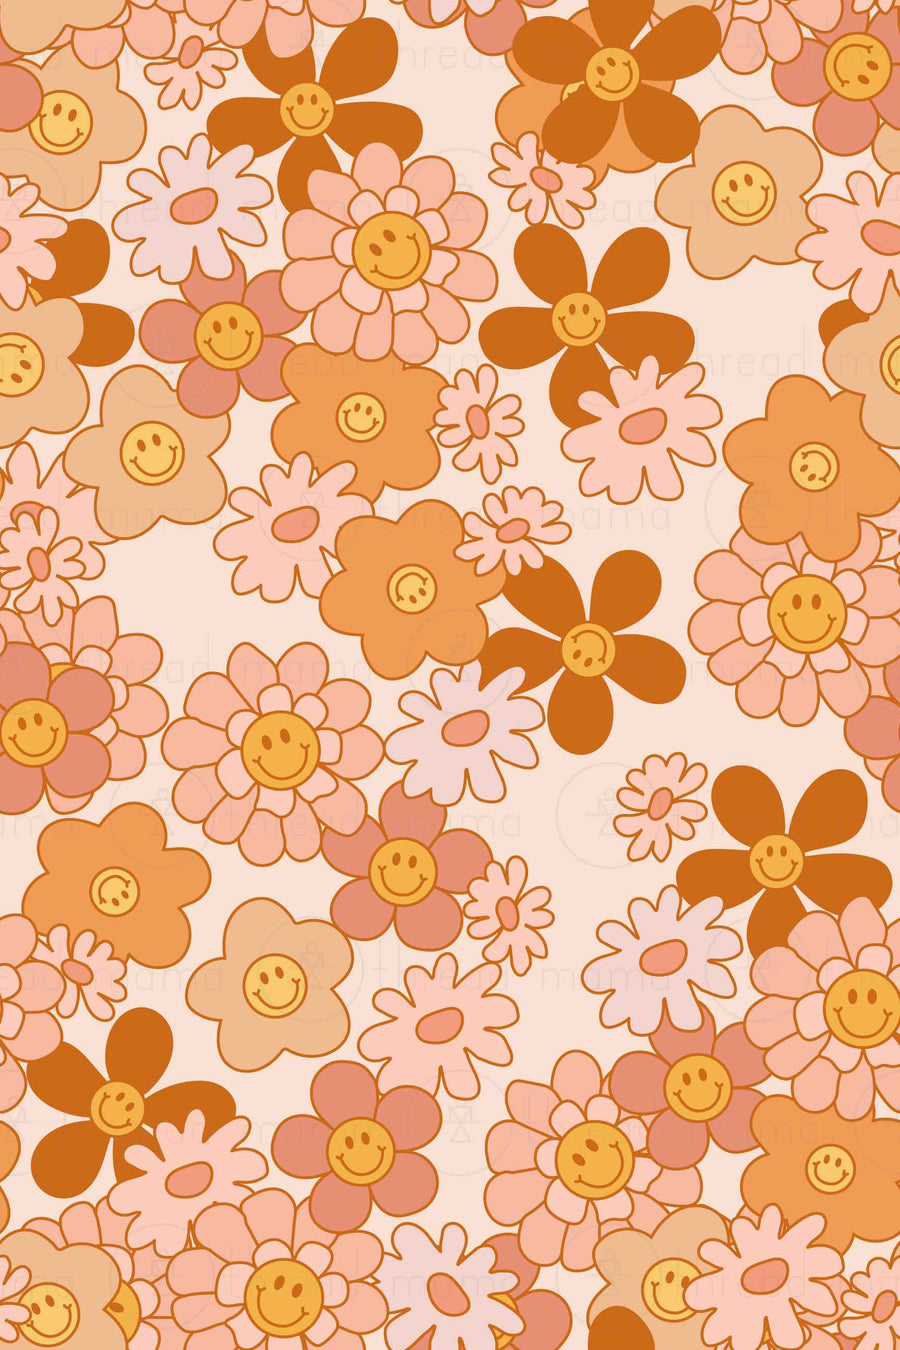 Background Patterns 63, and 63B